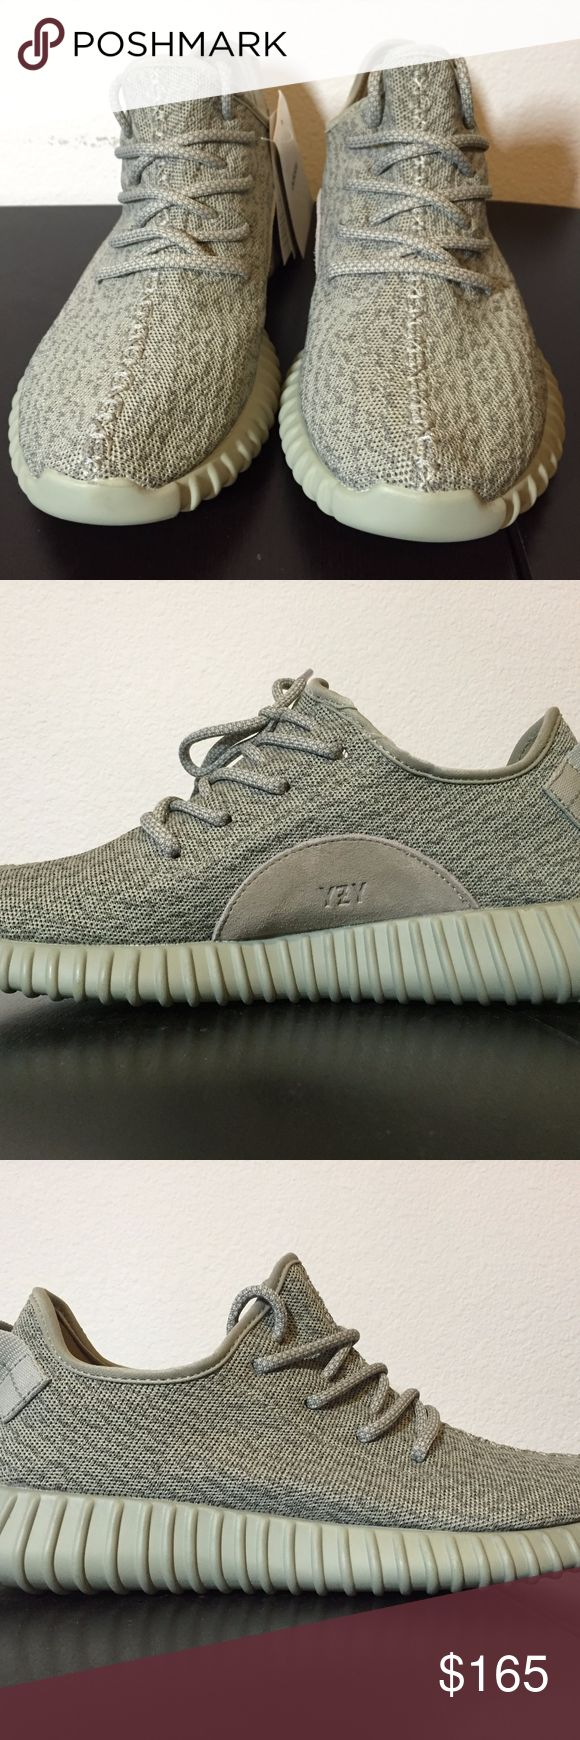 Yeezy Boost 350 Moonrock Gray Feel free to make an offer, every offer reviewed! Brand new in original box with tags/receipt Ships same/next day double boxed Check my feedback on IG @solesourced I GUARANTEE you won't be disappointed or your money back $$$$$ Contact me with ANY questions, better prices, or other sizes/styles! Text 805-464-6480 Shoes Sneakers